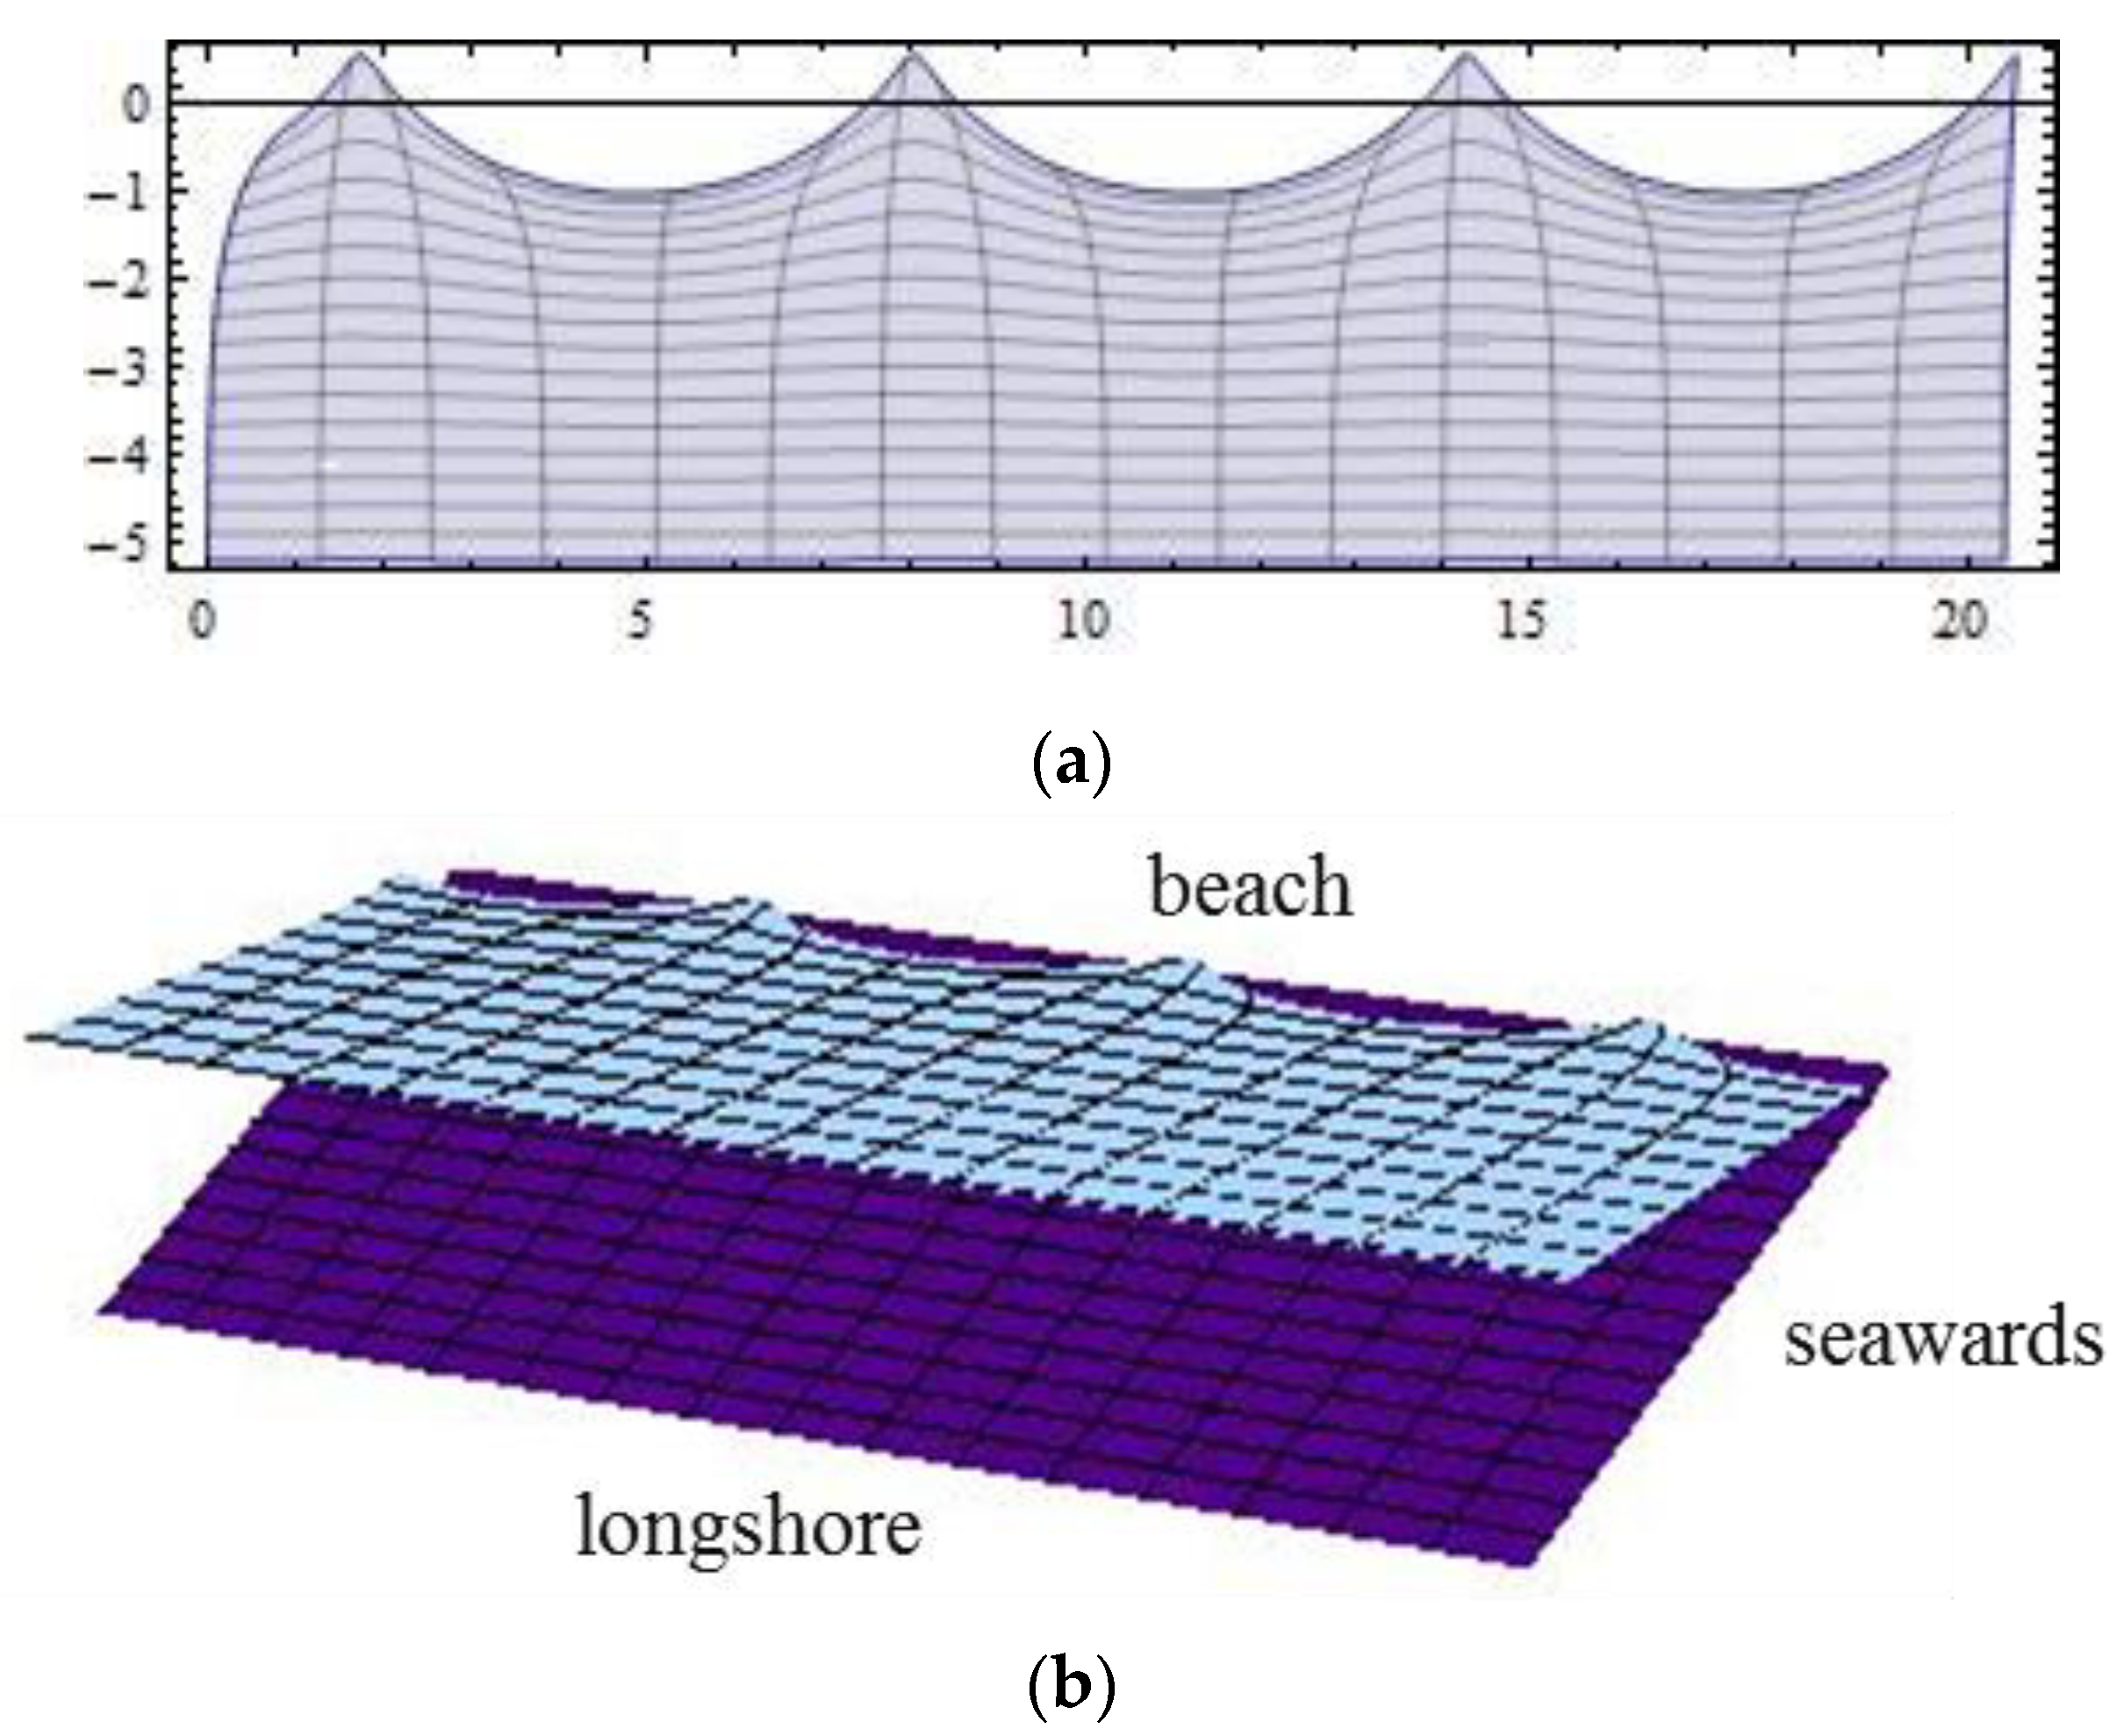 Fluids | Free Full-Text | Geophysical Equatorial Edge Wave with